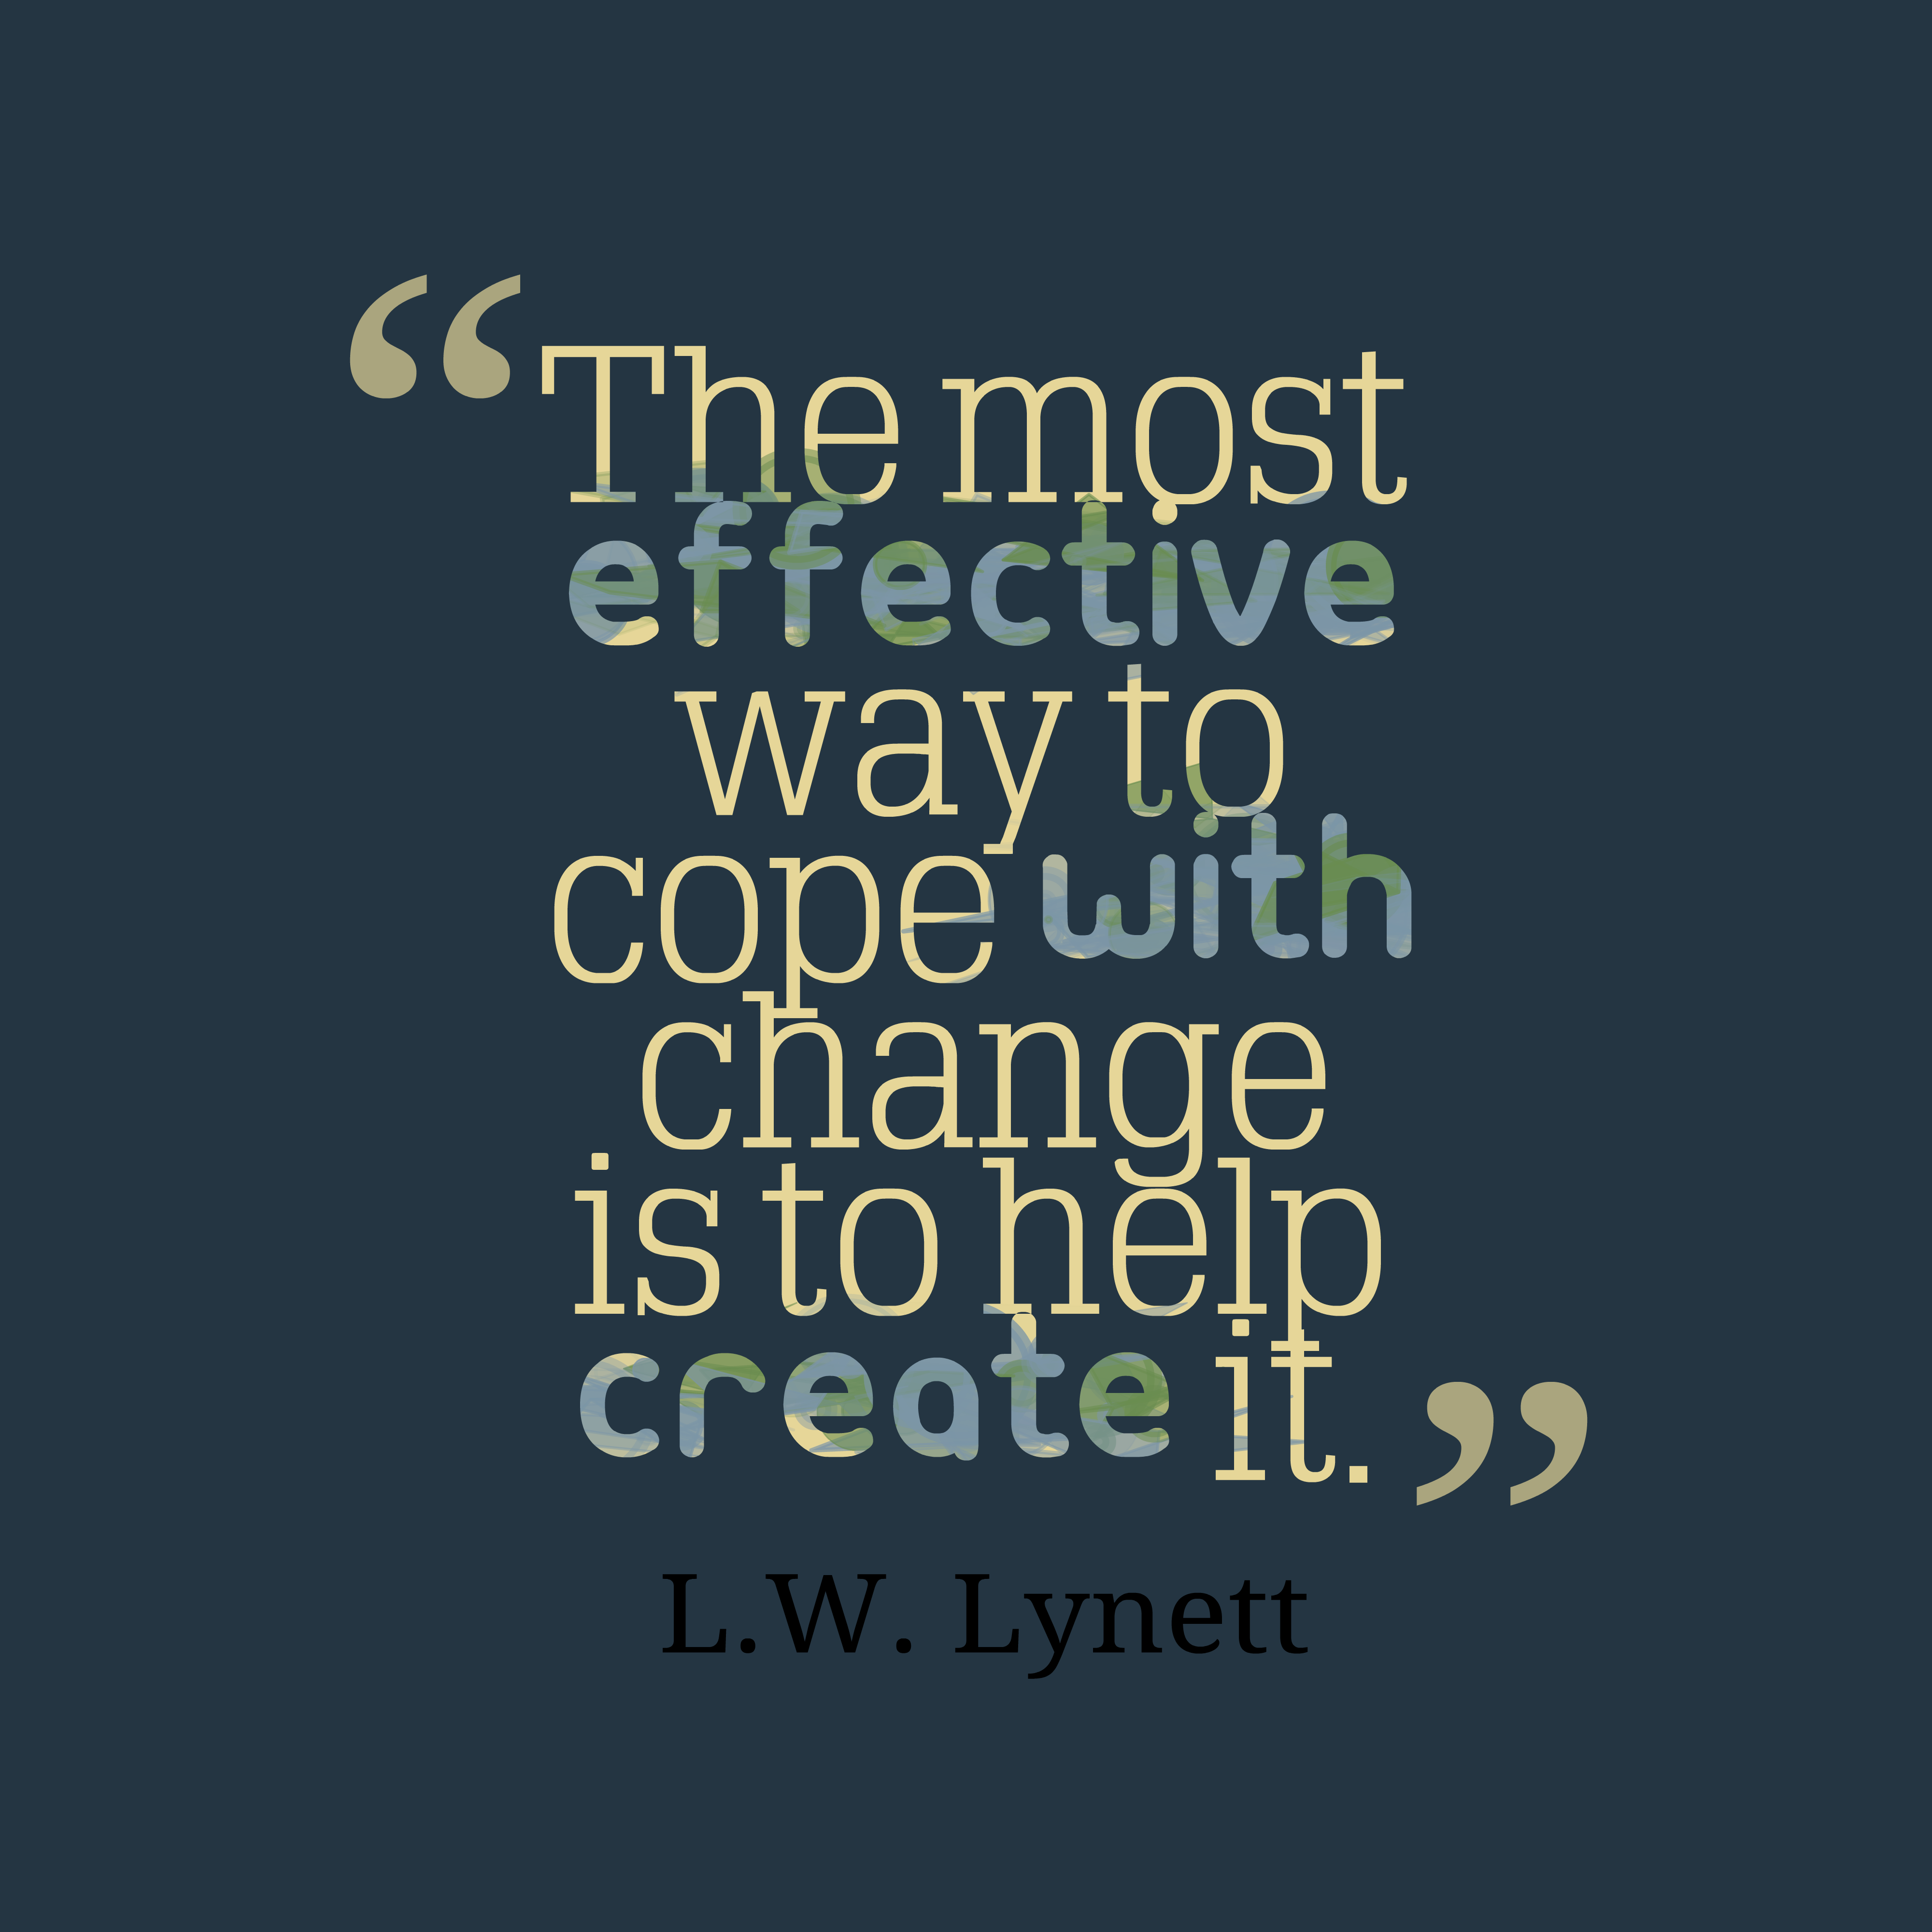 Quotes image of The most effective way to cope with change is to help create it.